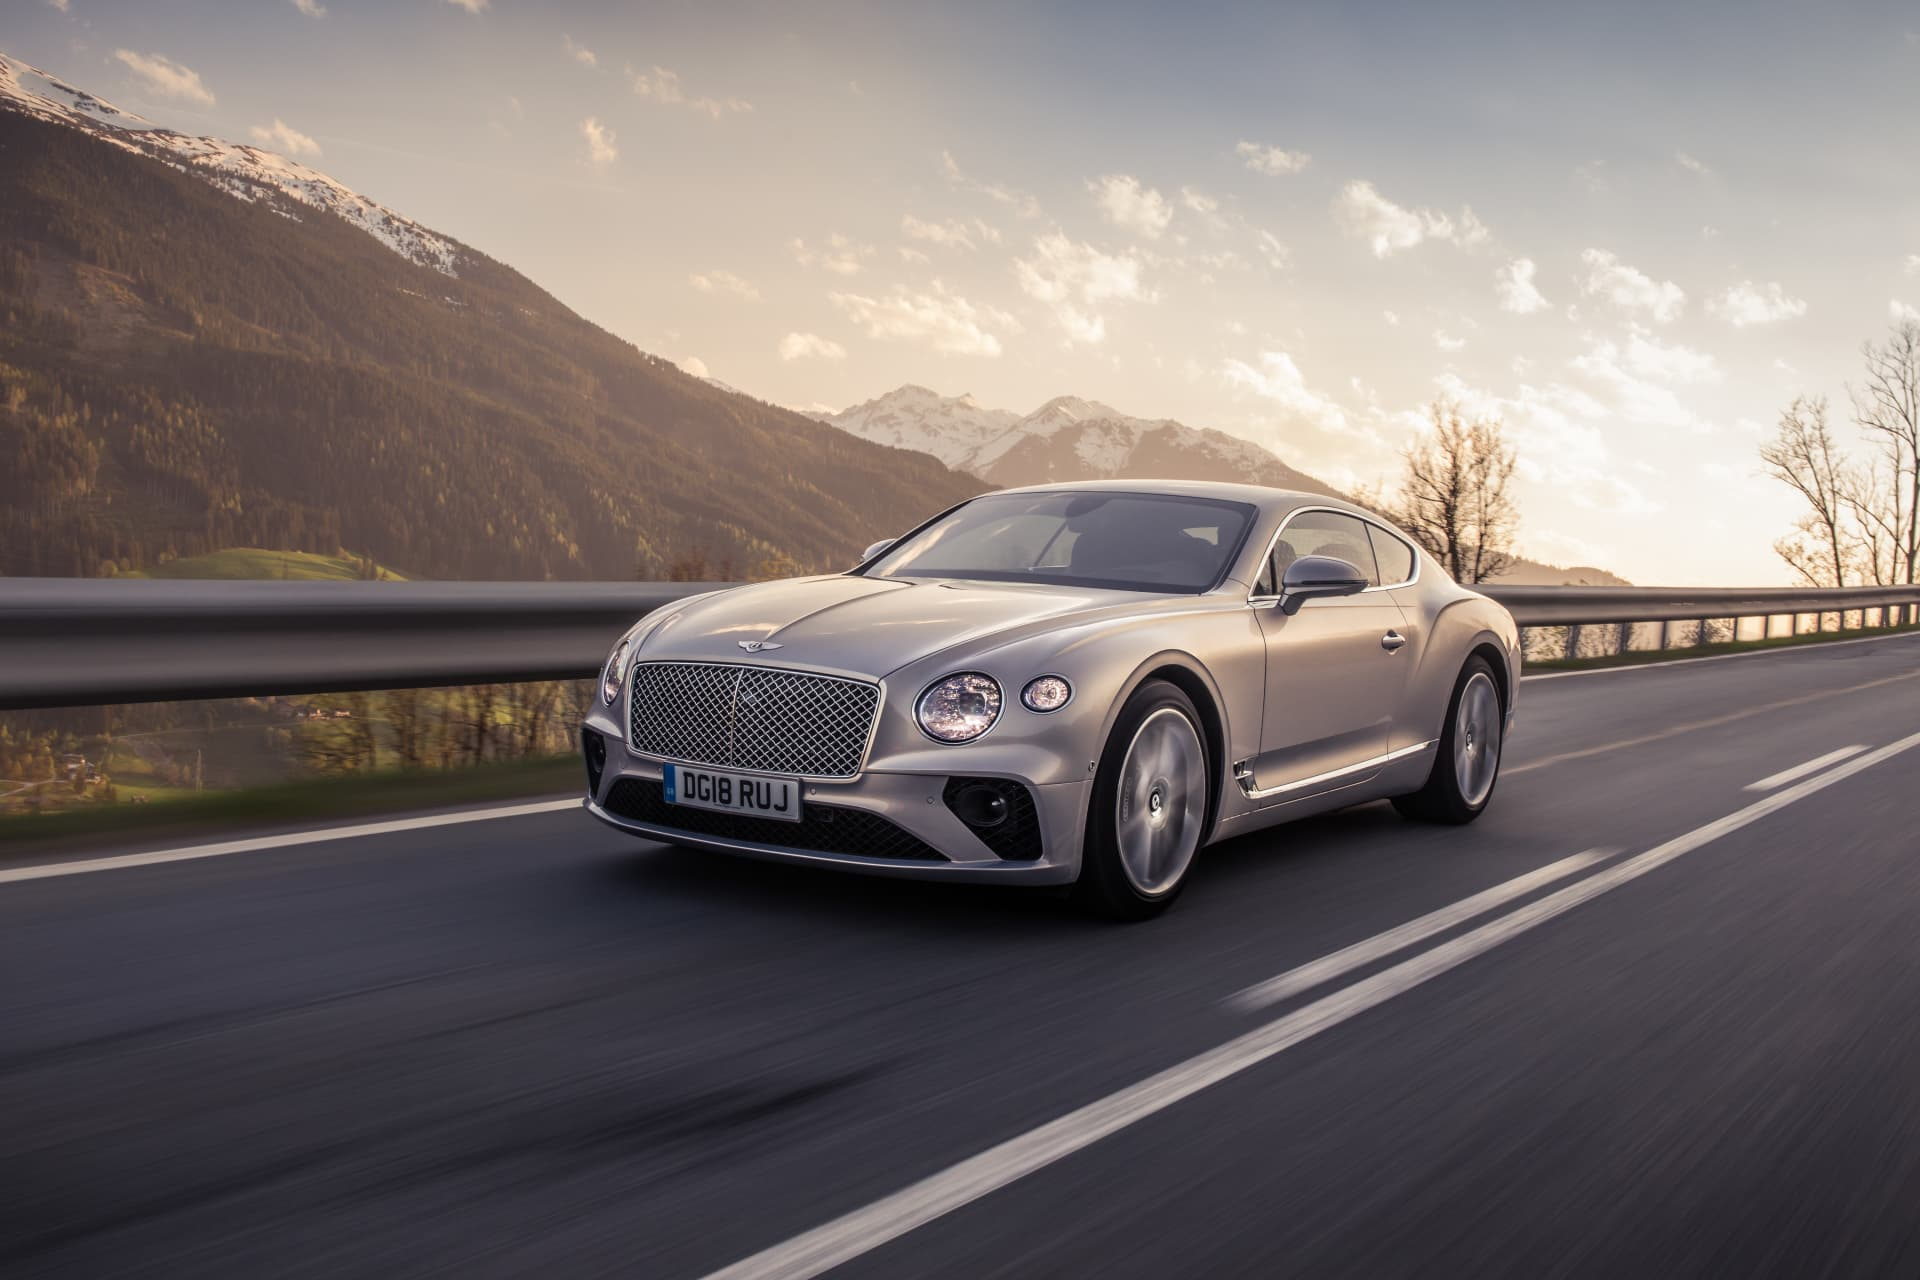 Bentley Continental Gt Extreme Silver 4